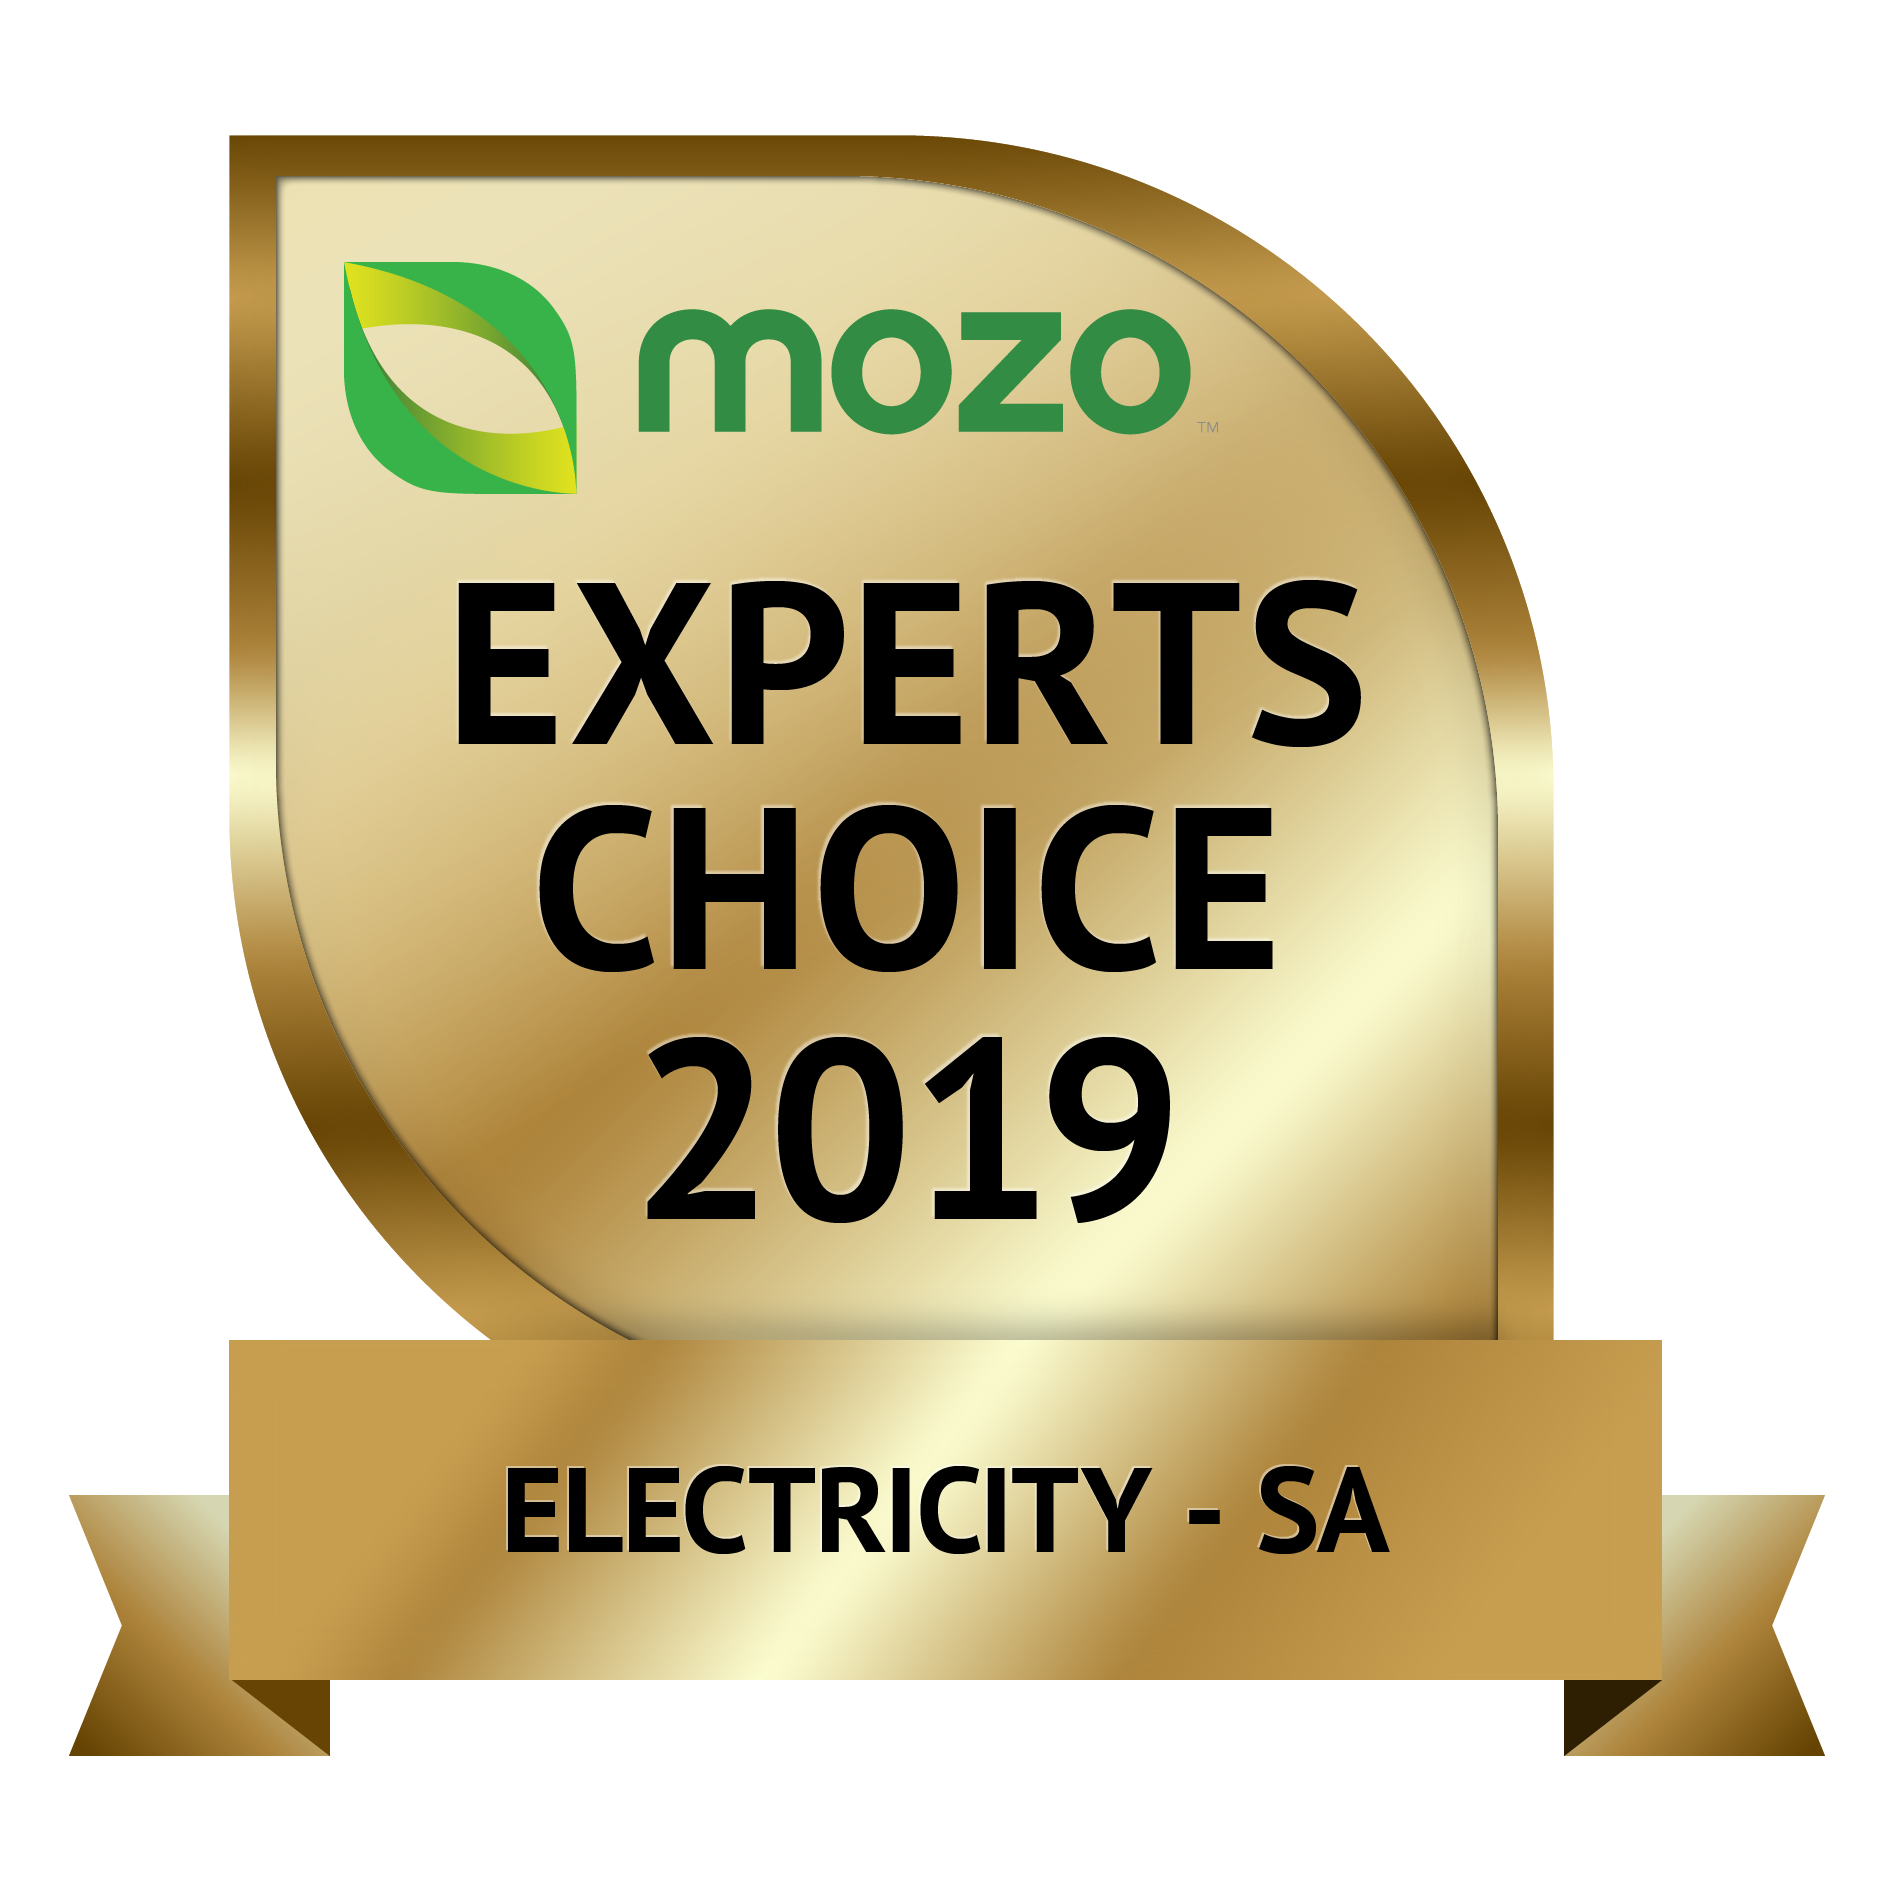 Mozo Experts Choice 2019;